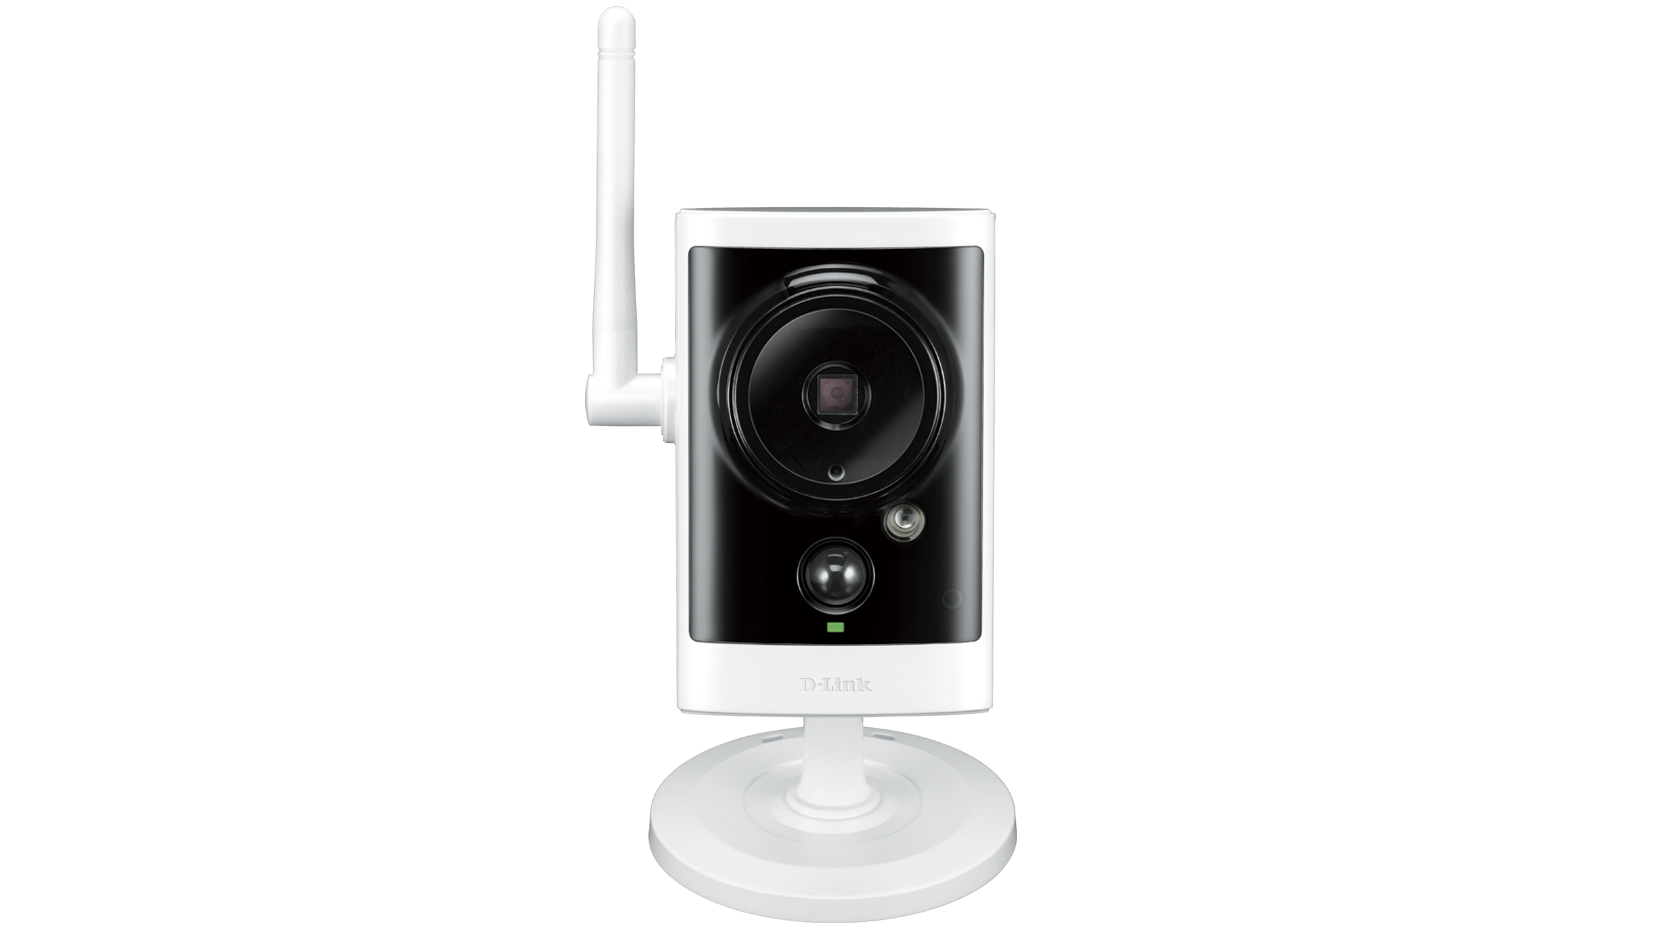 Wi-Fi IP Camera DCS-2330L